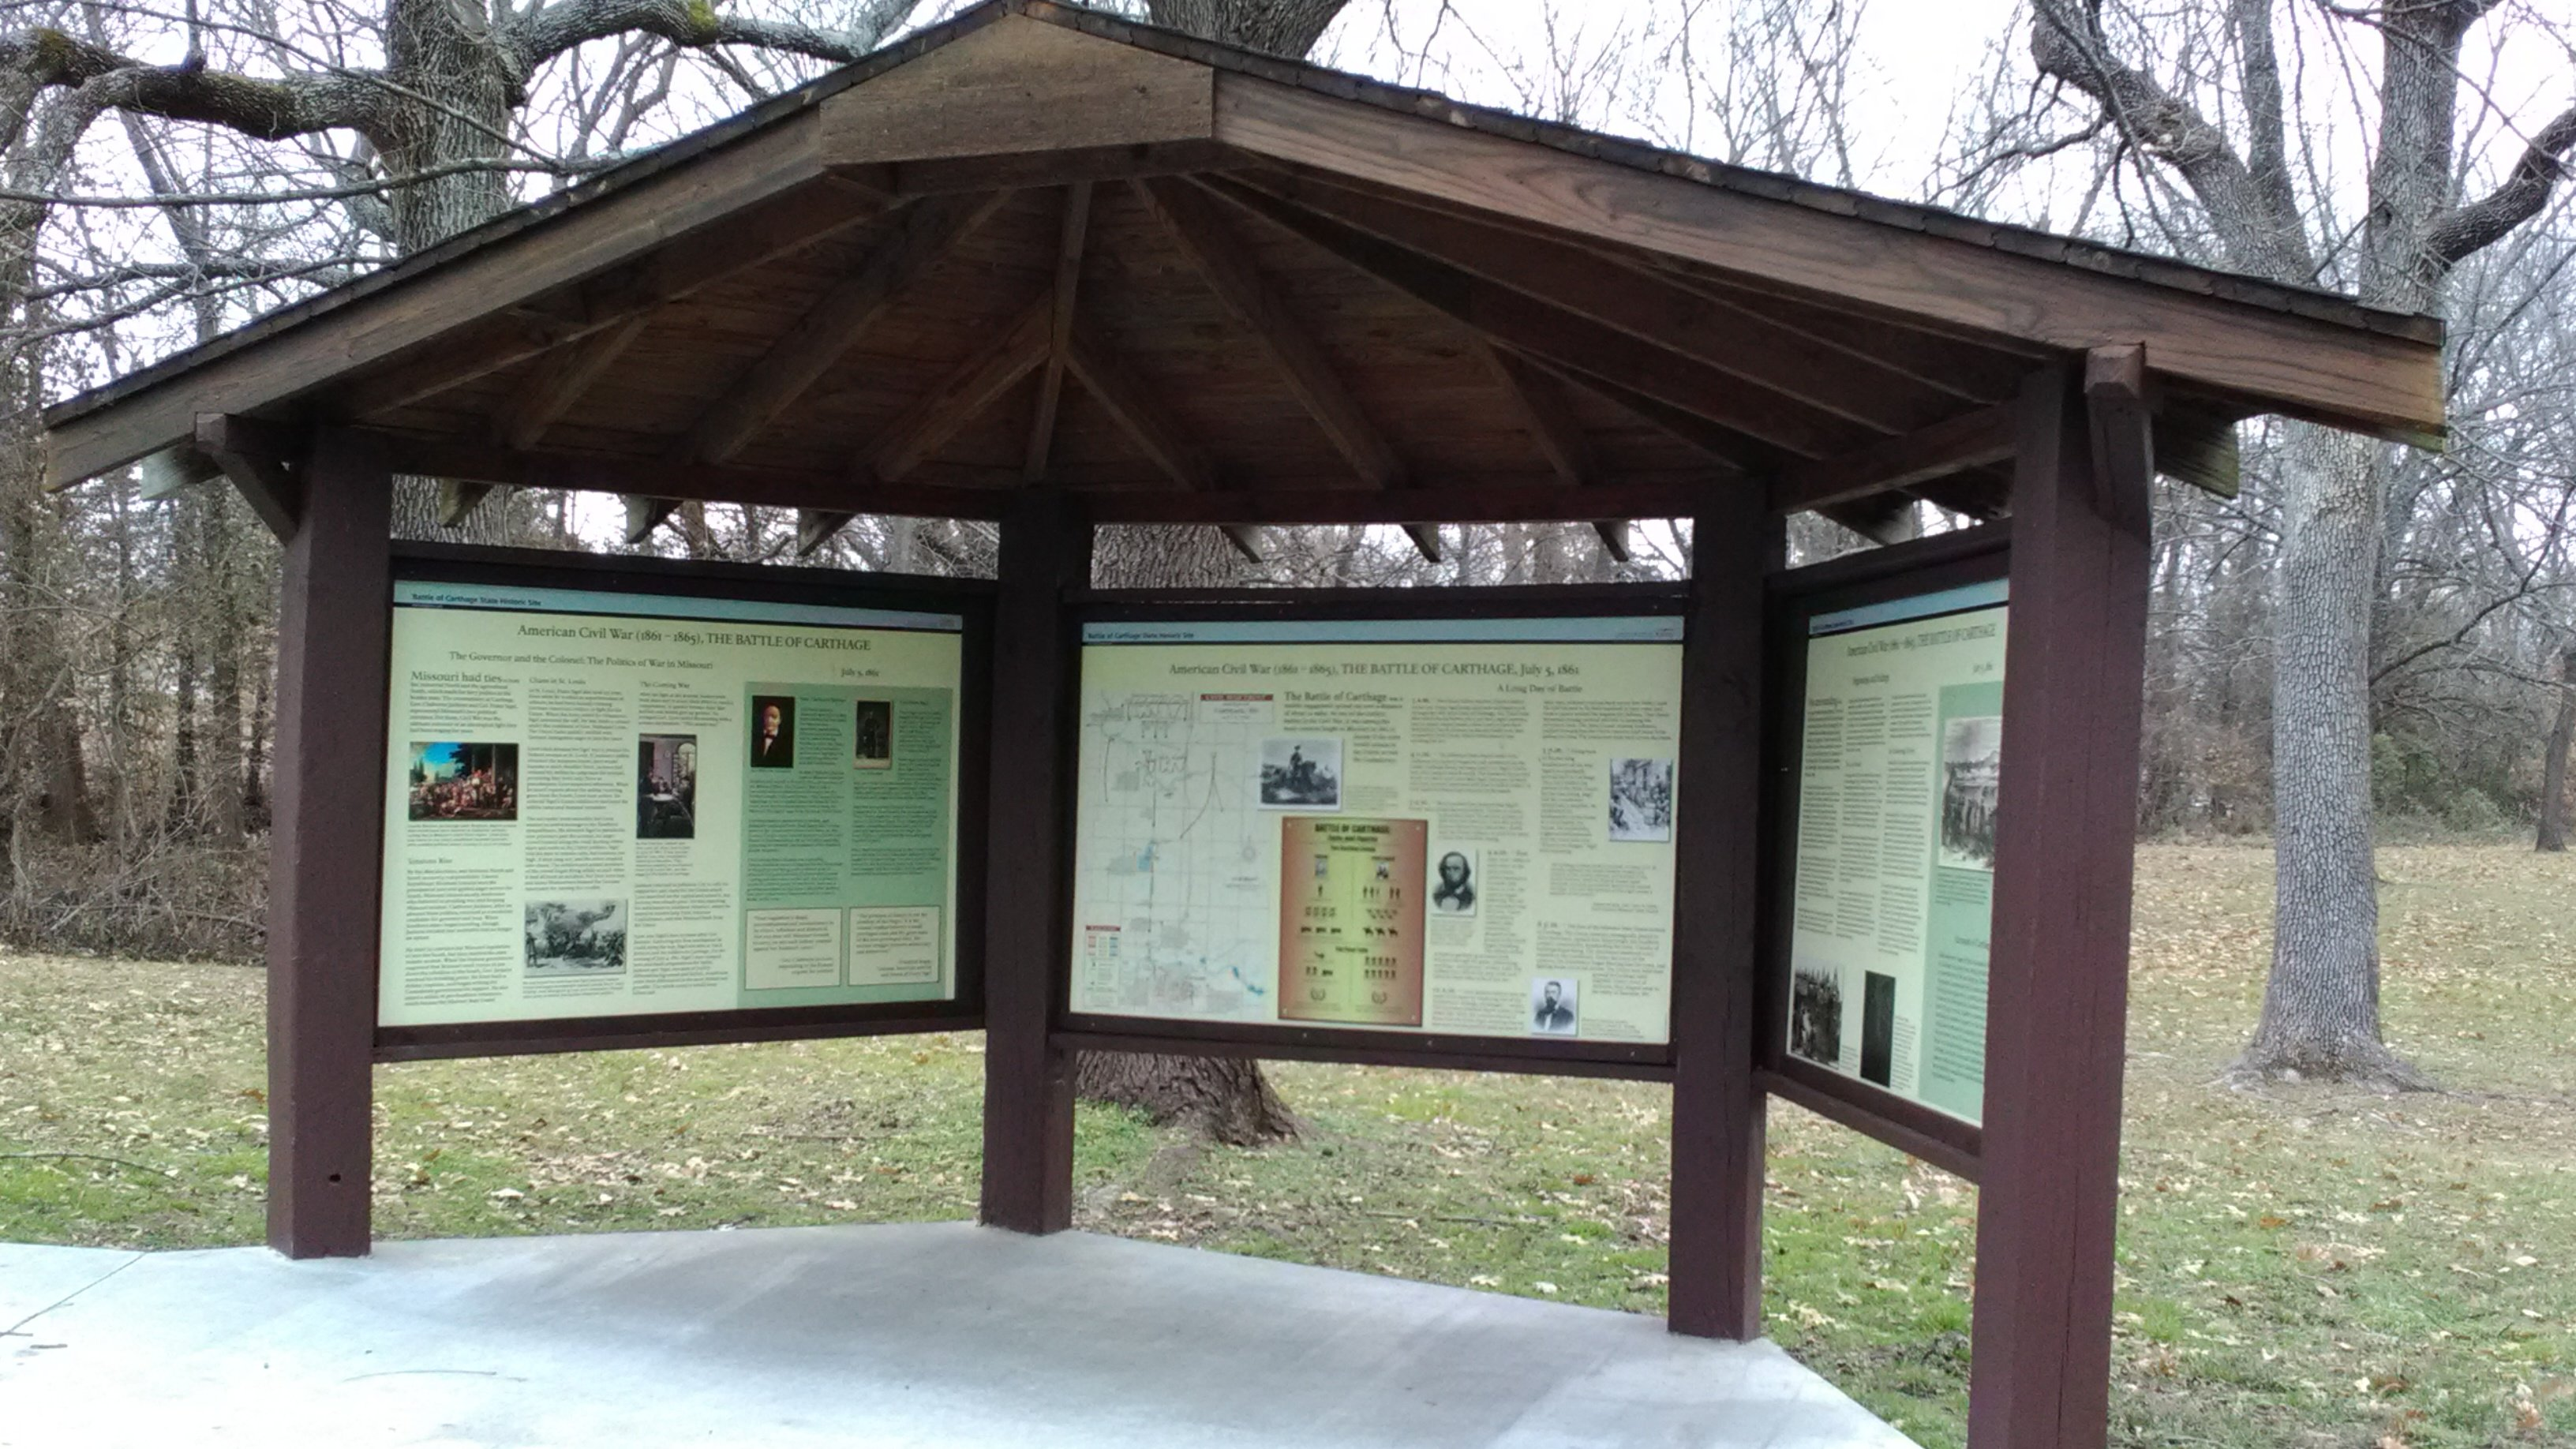 Exhibit kiosk at Battle of Carthage State Historic Site.